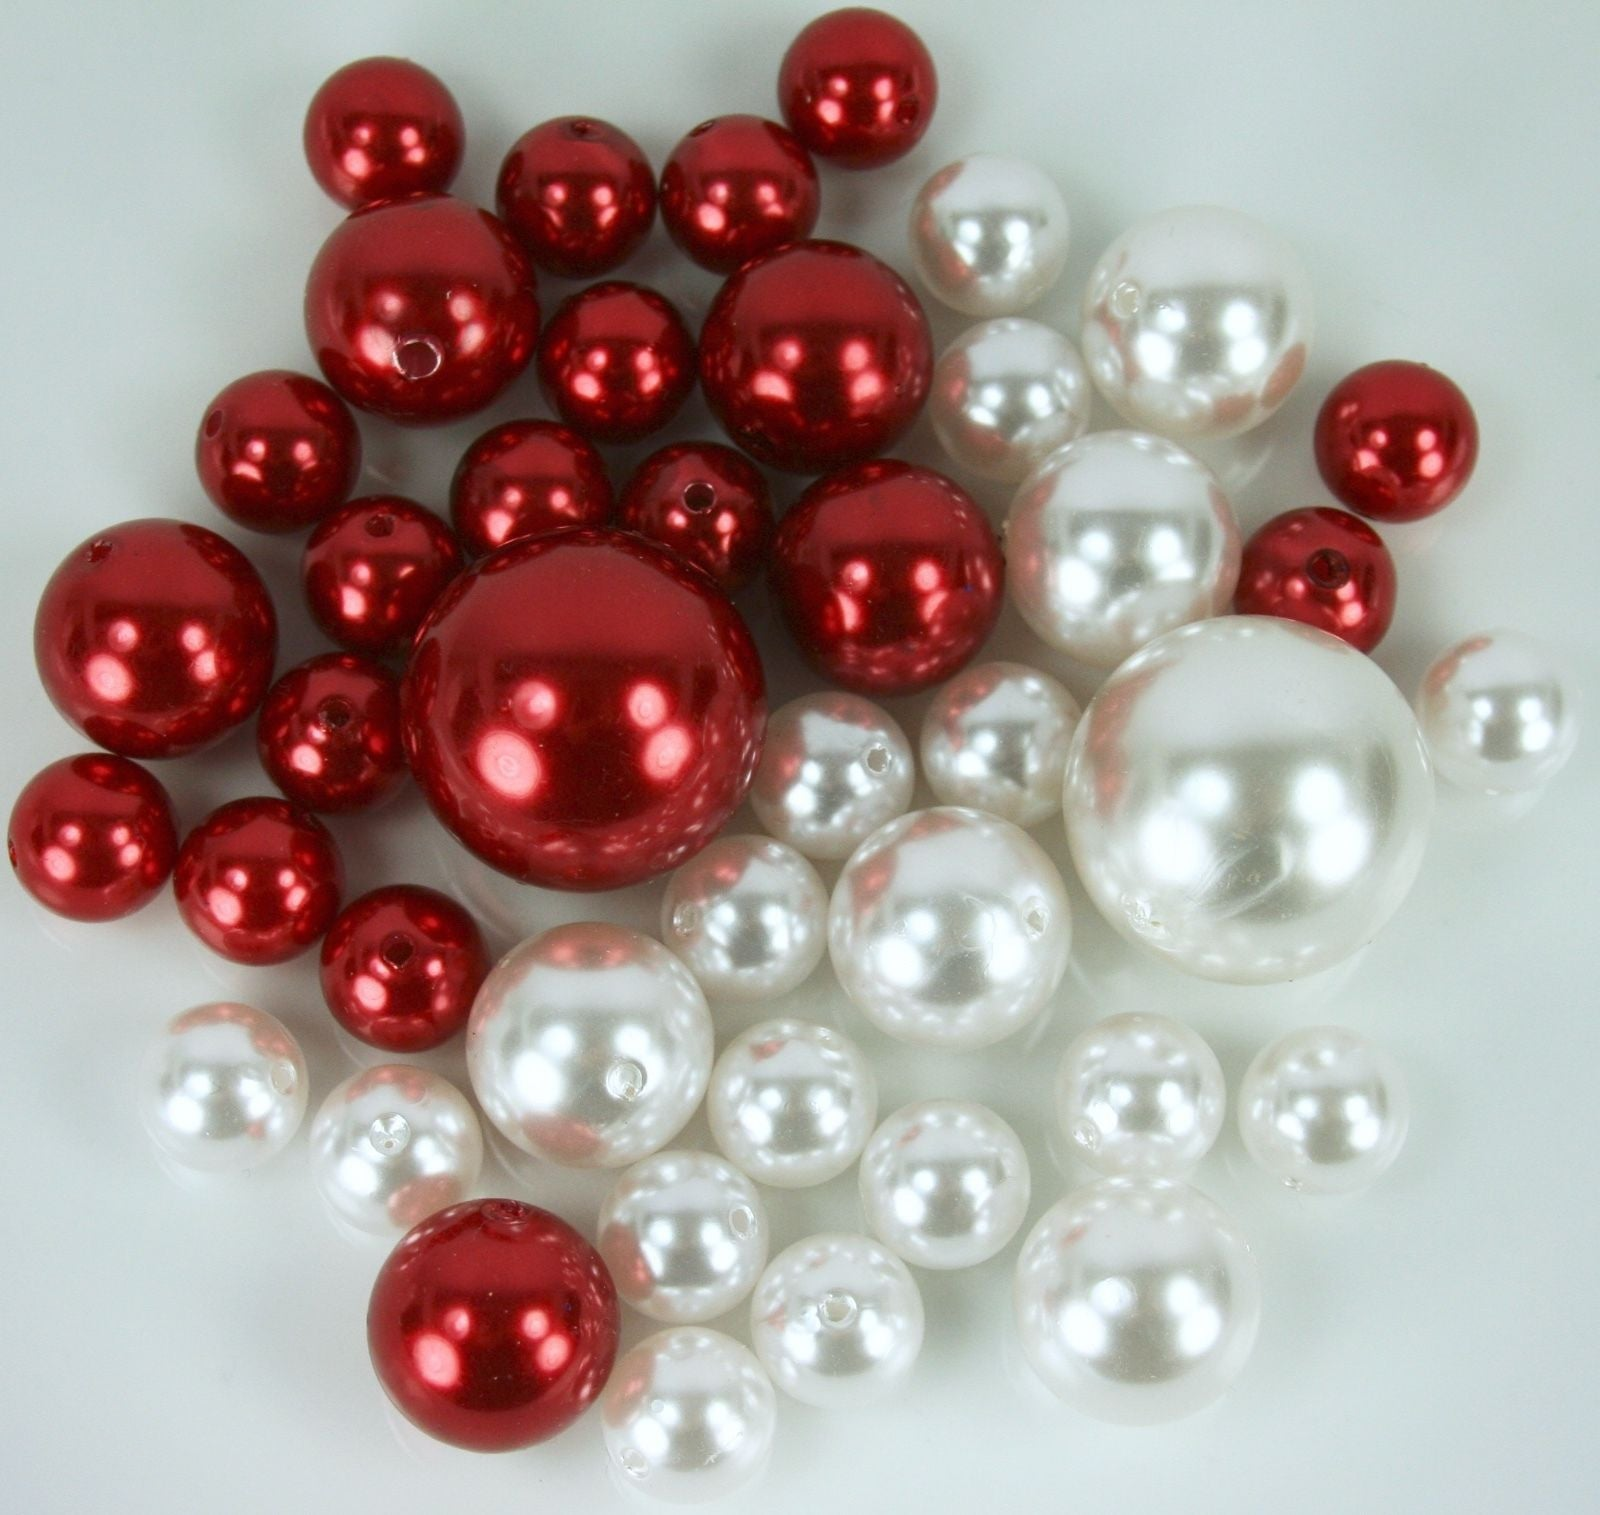 crystal fxad wholesale beads for rondelle making detail product china glass jewelry sale bulk in